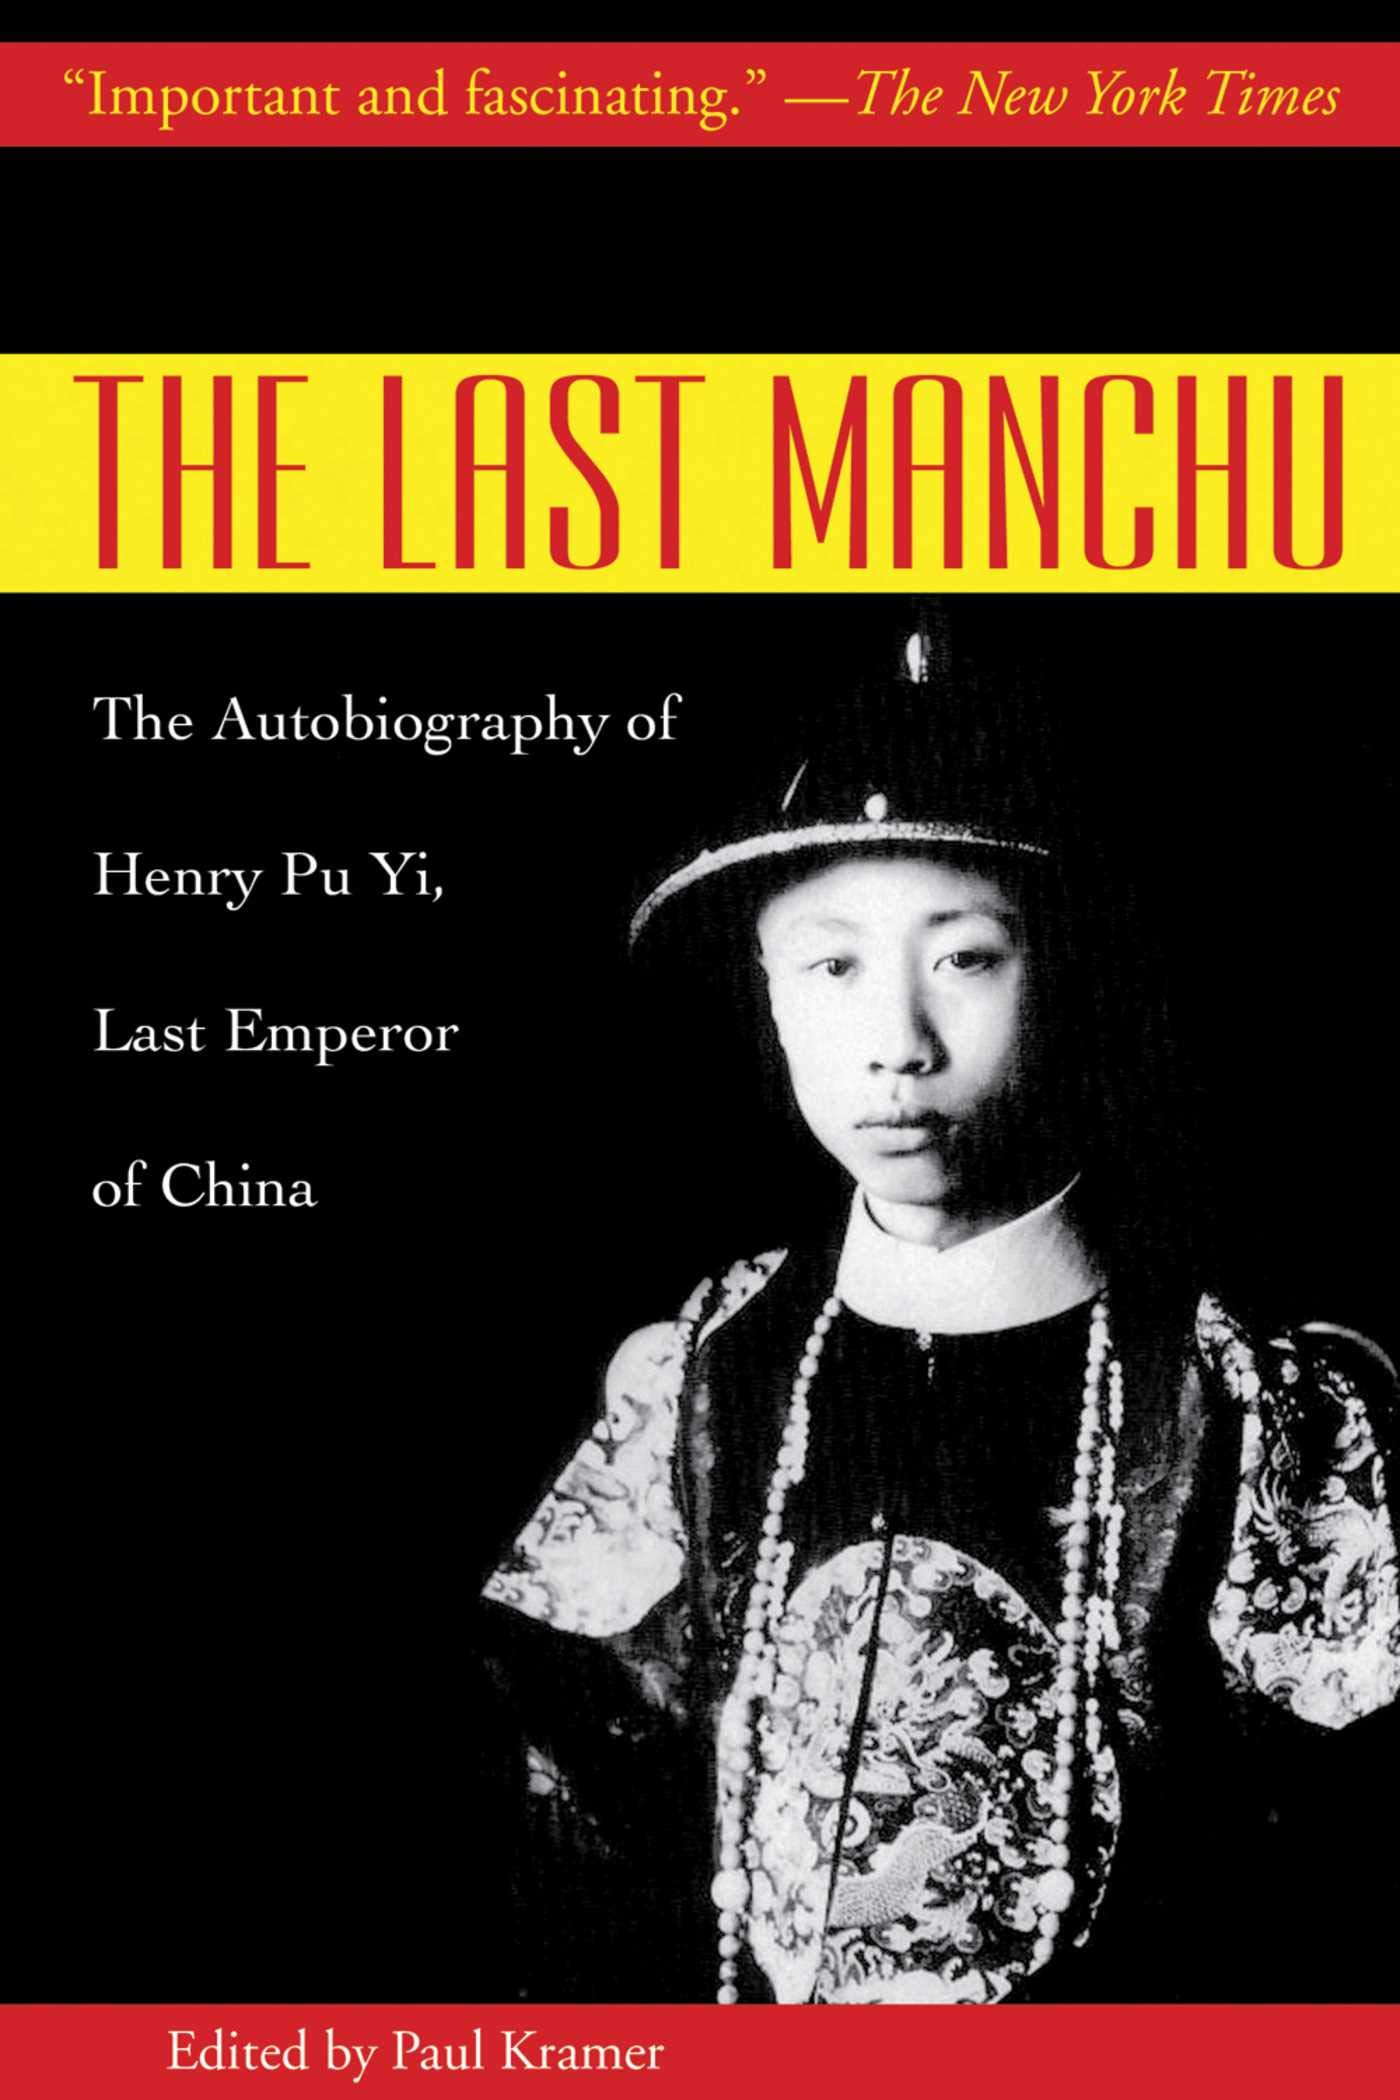 The Last Manchu: The Autobiography of Henry Pu Yi, Last Emperor of China  Paperback – March 1, 2010